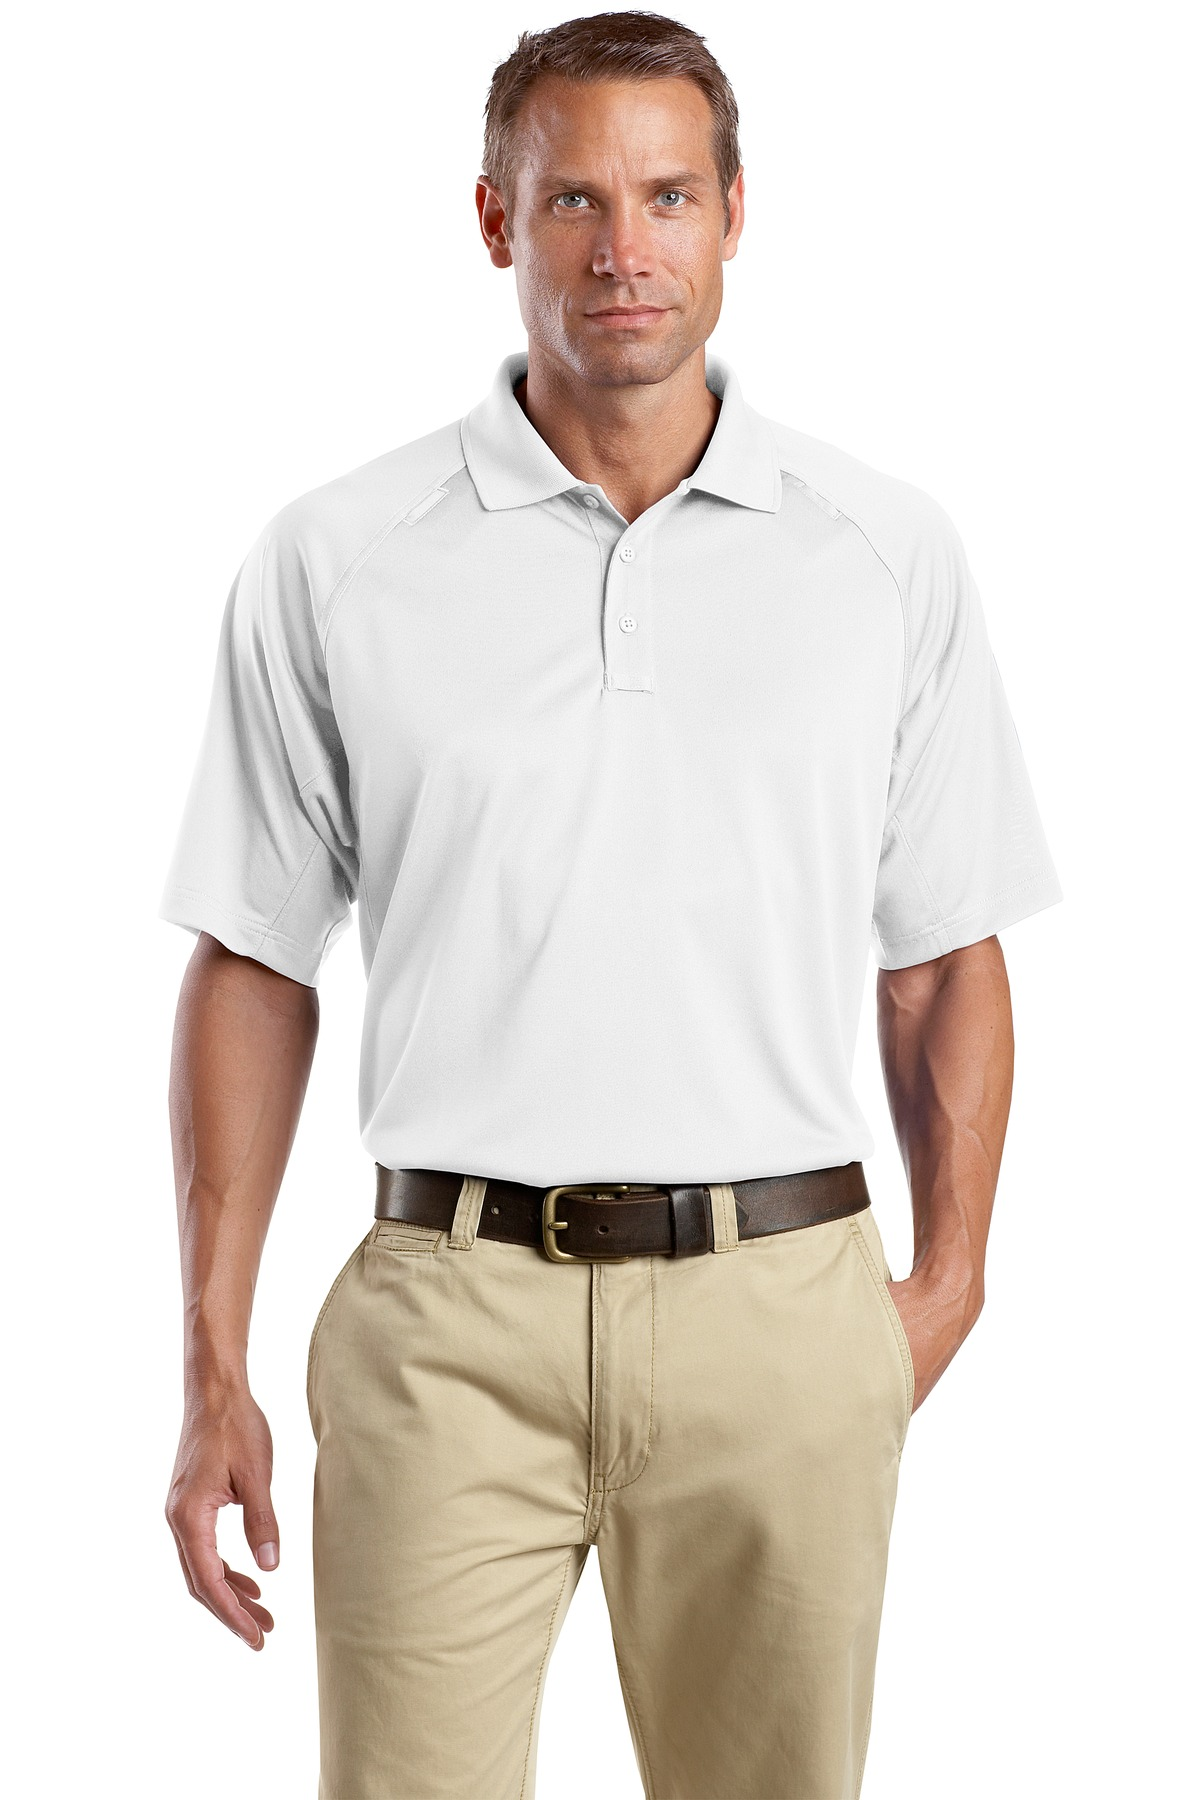 CornerStone ®  - Select Snag-Proof Tactical Polo. CS410 - White